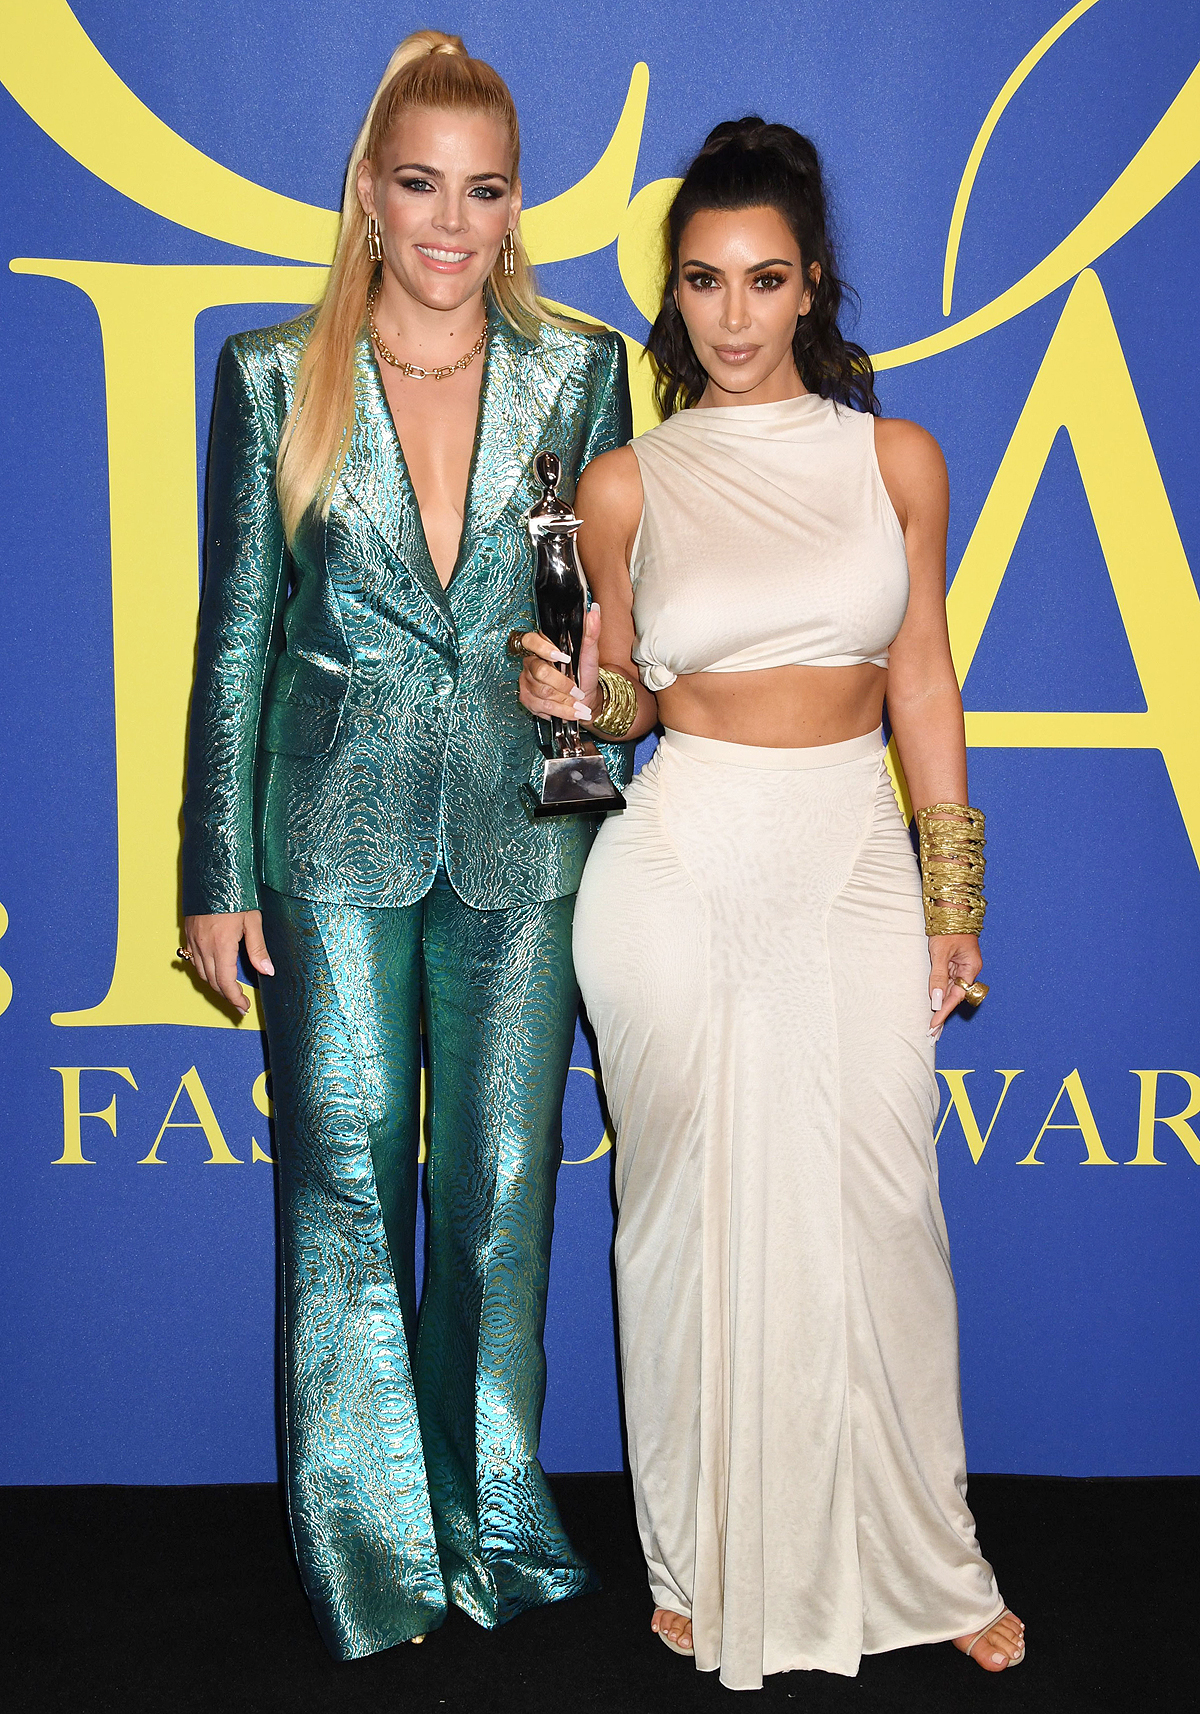 CFDA Fashion Awards, Press Room, New York, USA - 04 Jun 2018